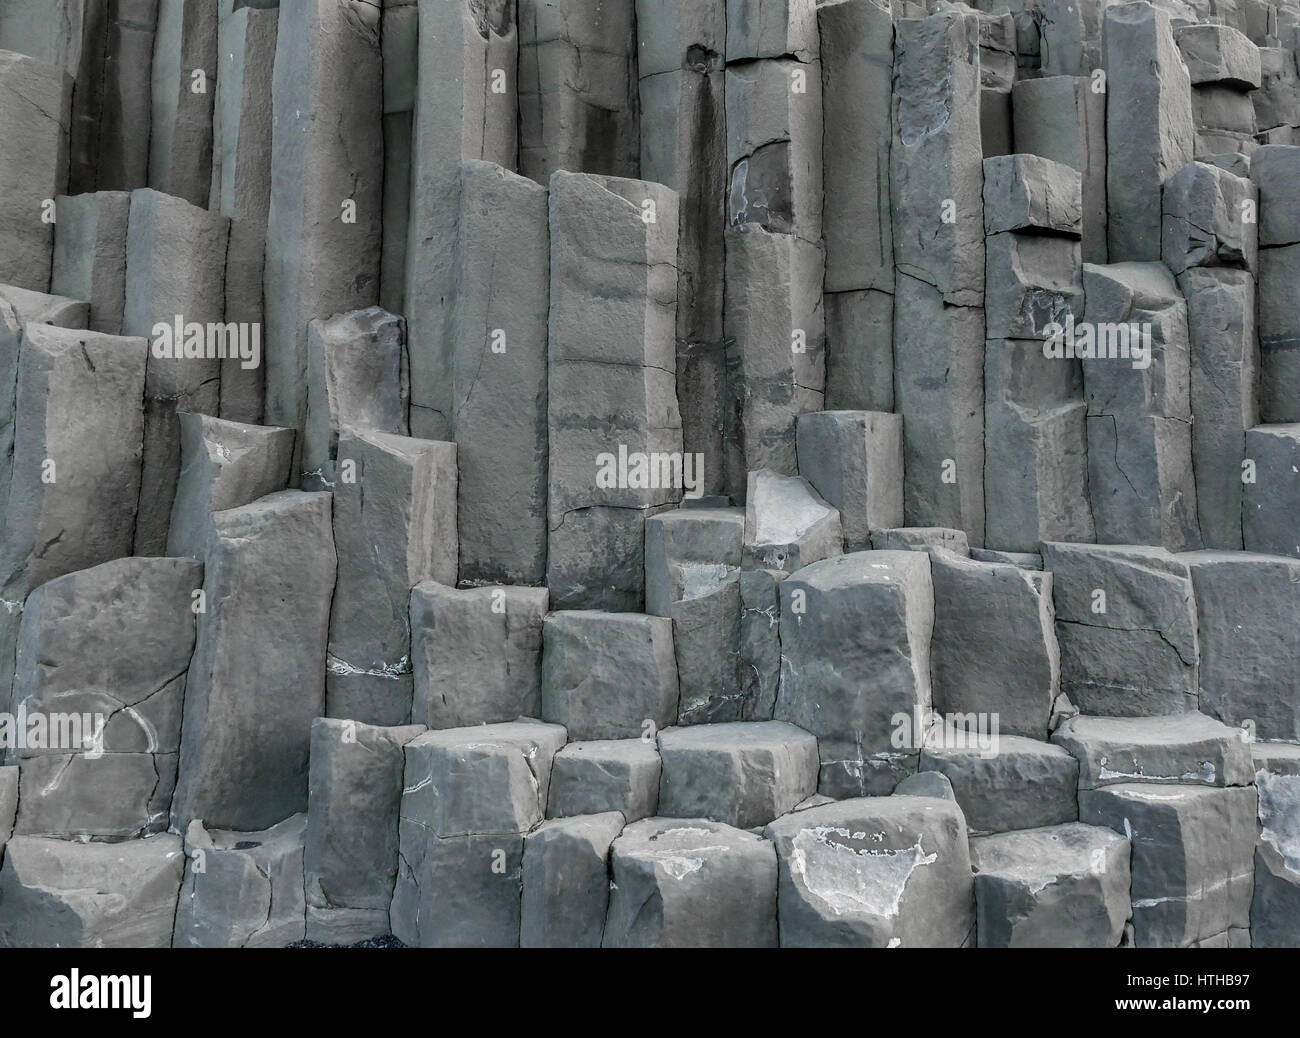 Stacks of grey volcanic hexagonal basalt volcanic rock columns, Reynisfjara, Iceland - Stock Image